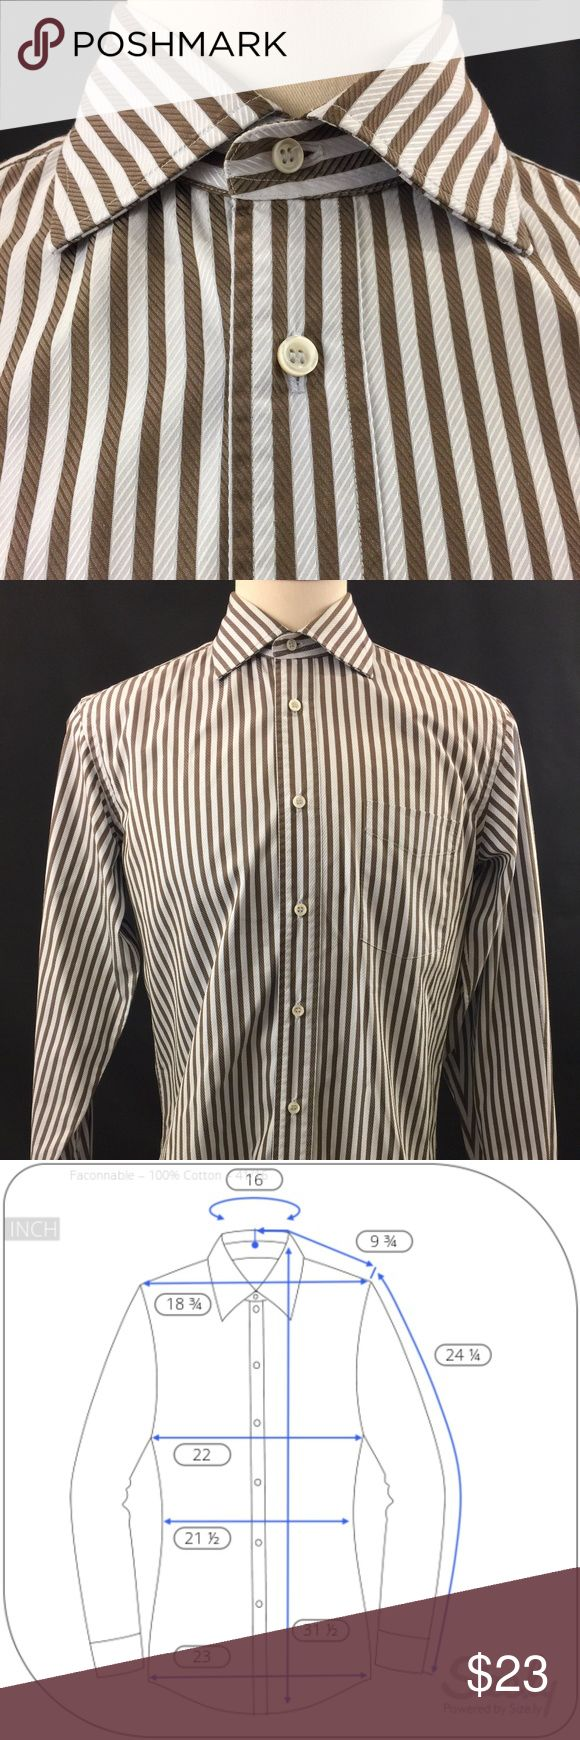 Faconnable L/S Button Up Pinstripe Mens 16 Shirt Please see pictures for measurements  I will ship within 24 hours (same day if I receive the order before 8am pst)  Thank you. Faconnable Shirts Dress Shirts